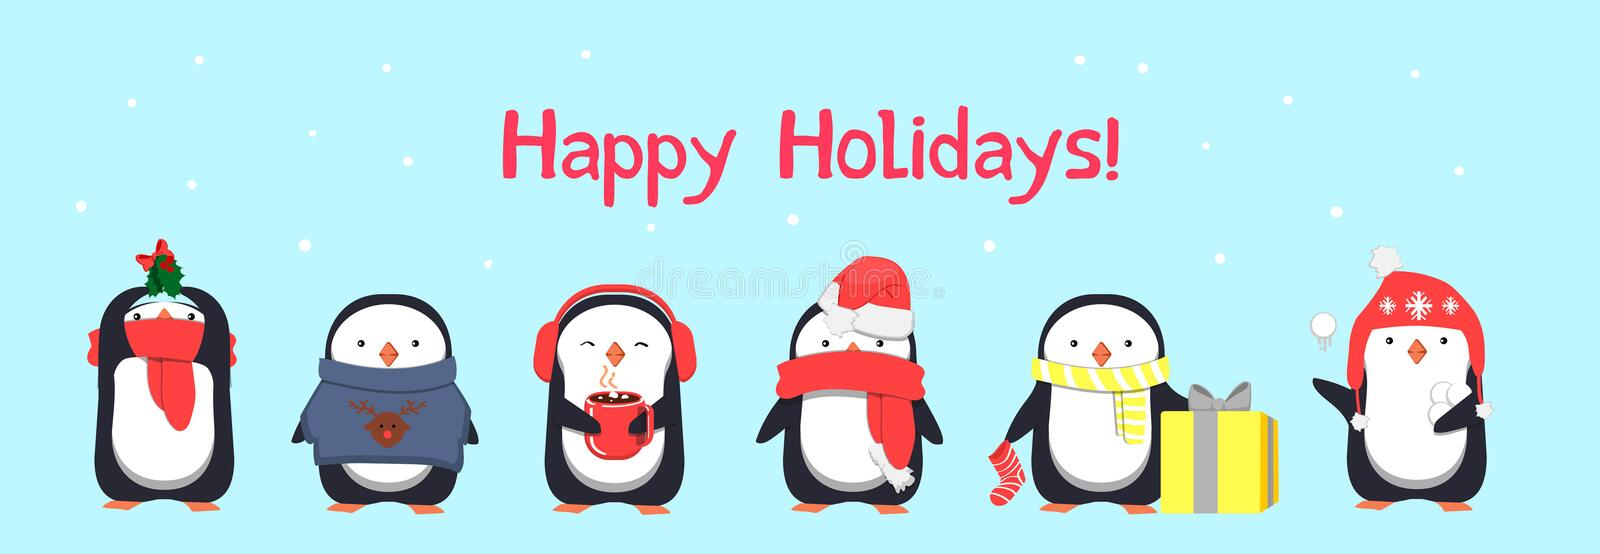 Happy Holidays greeting card with penguins vector illustration